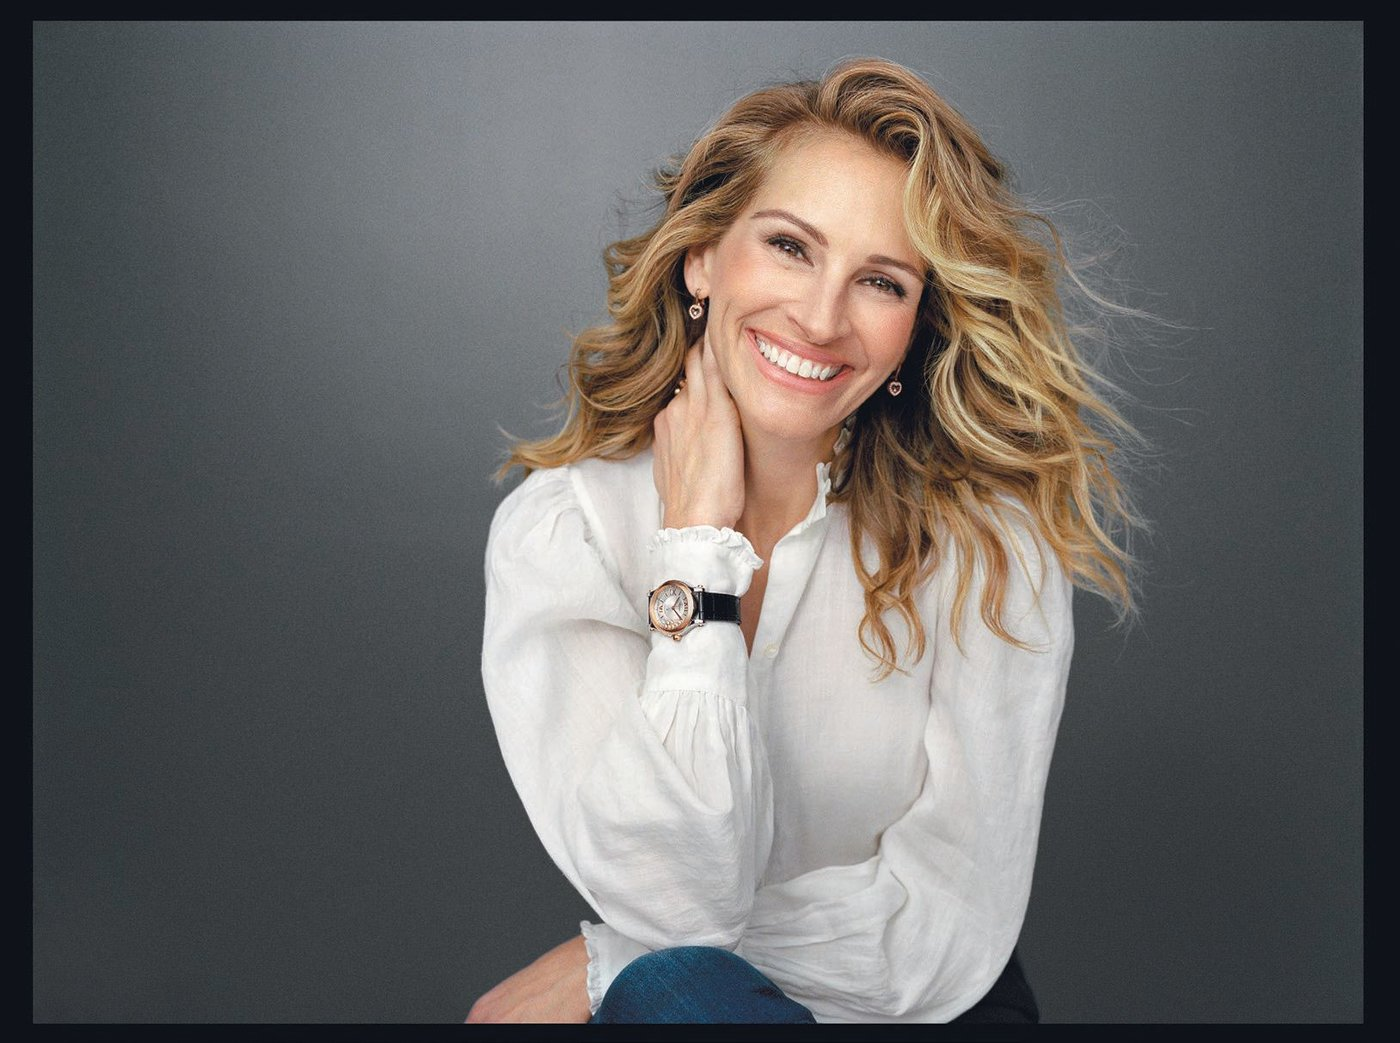 The Chopard Happy Diamonds campaign features Julia Roberts JULIA ROBERTS PORTRAIT ©SHAYNE LAVERDIÈRE, ART DIRECTOR: XAVIER DOLAN, STYLIST: ELIZABETH STEWART